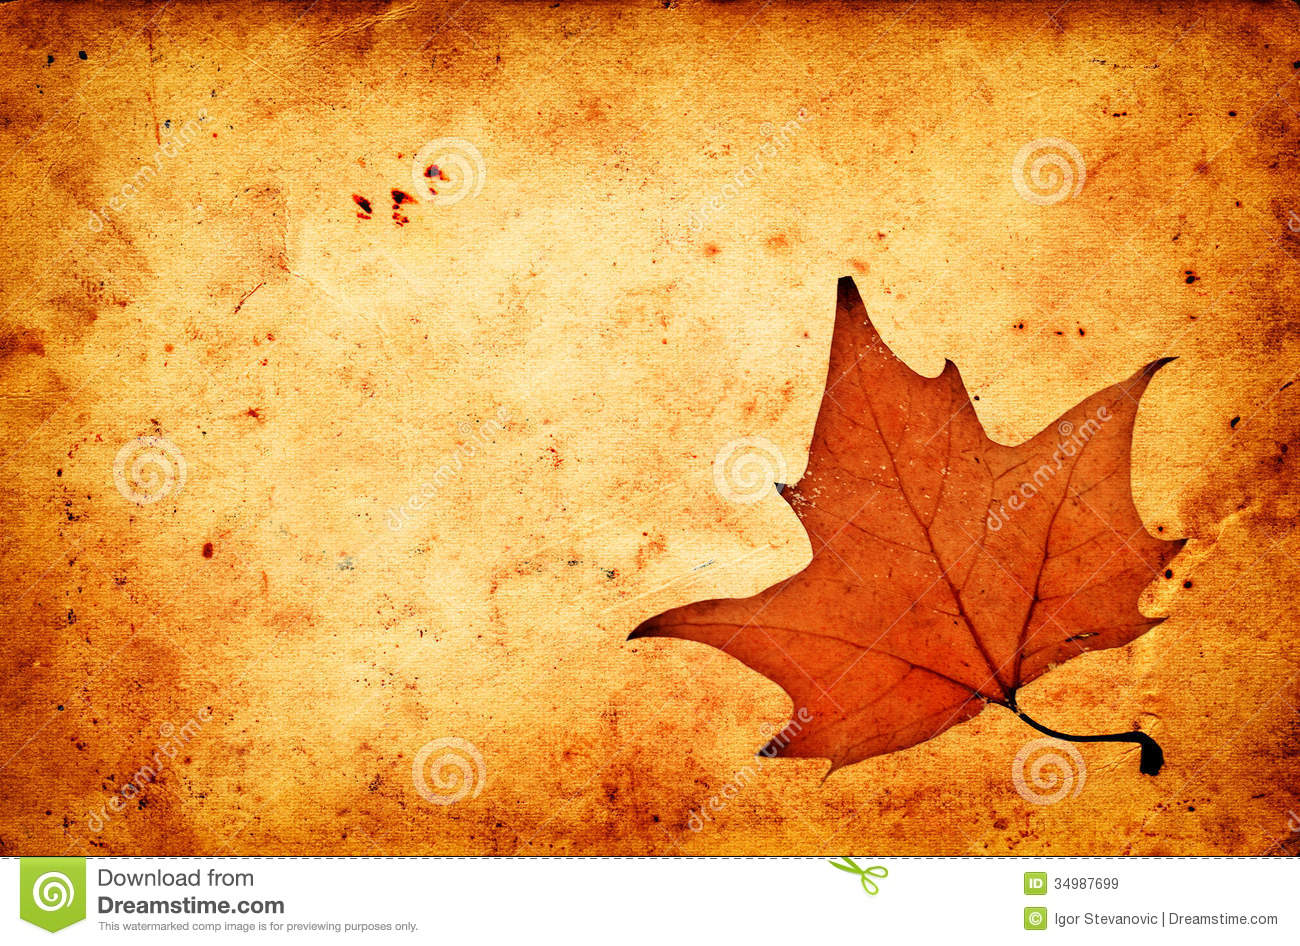 Fall Leaves Wallpaper Border Autumn Maple Leaf On Grunge Old Paper Stock Image Image